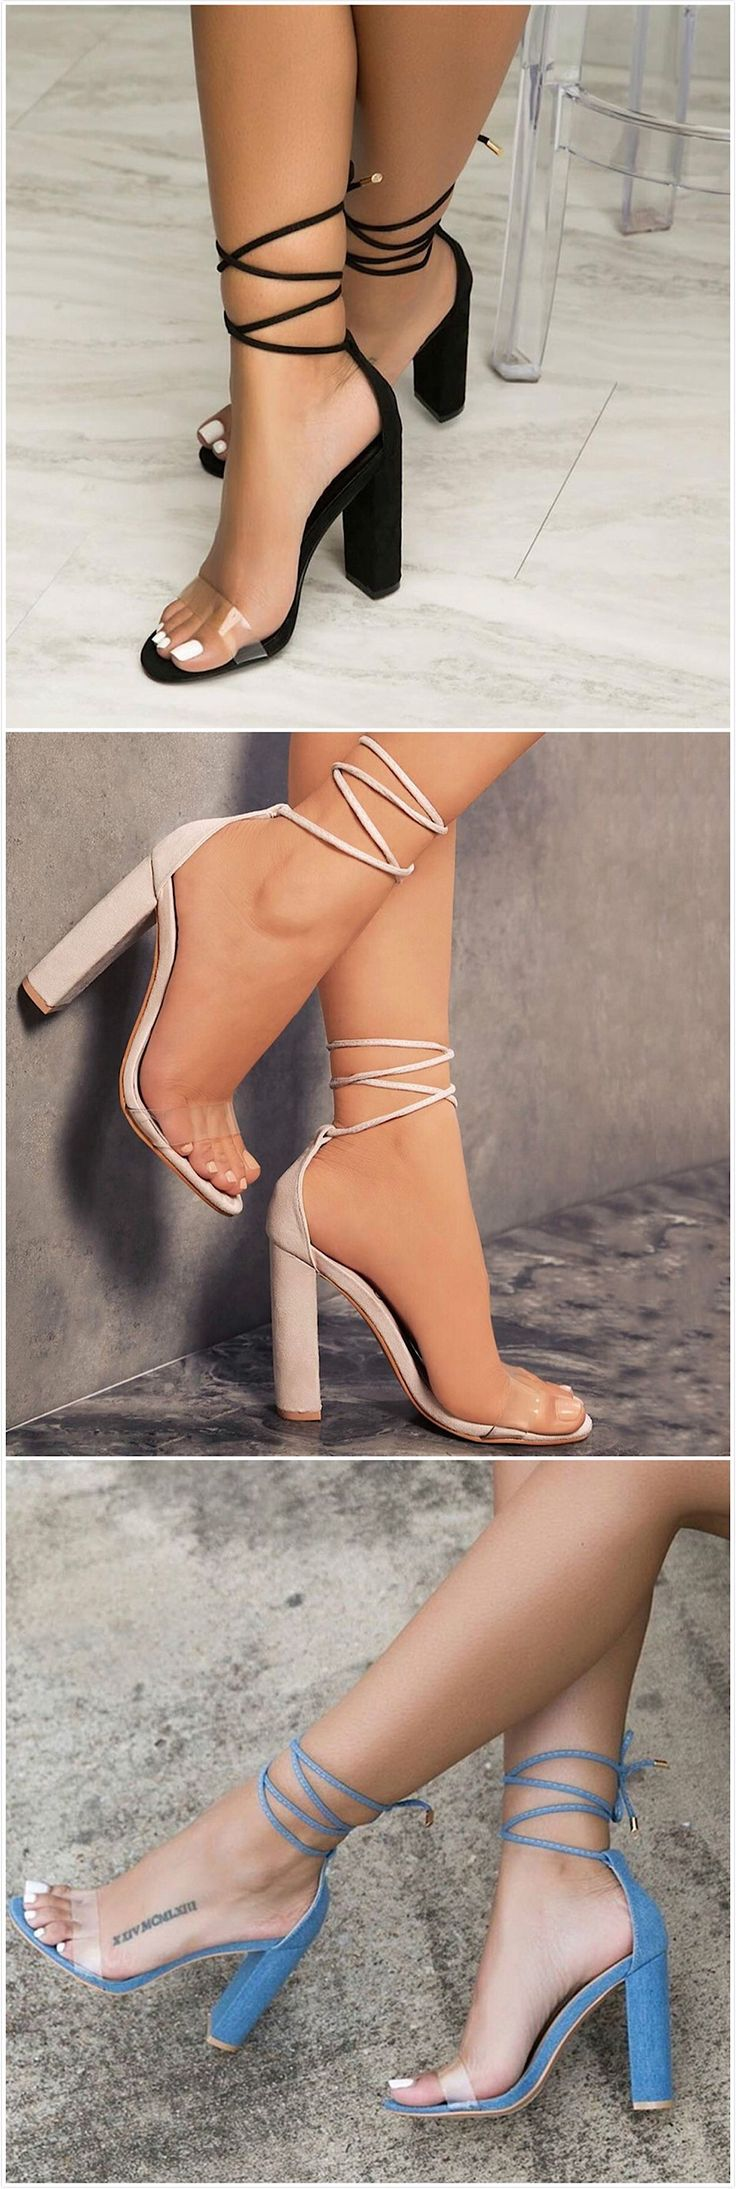 Women's Open Toe Lace up High Heels Sandals